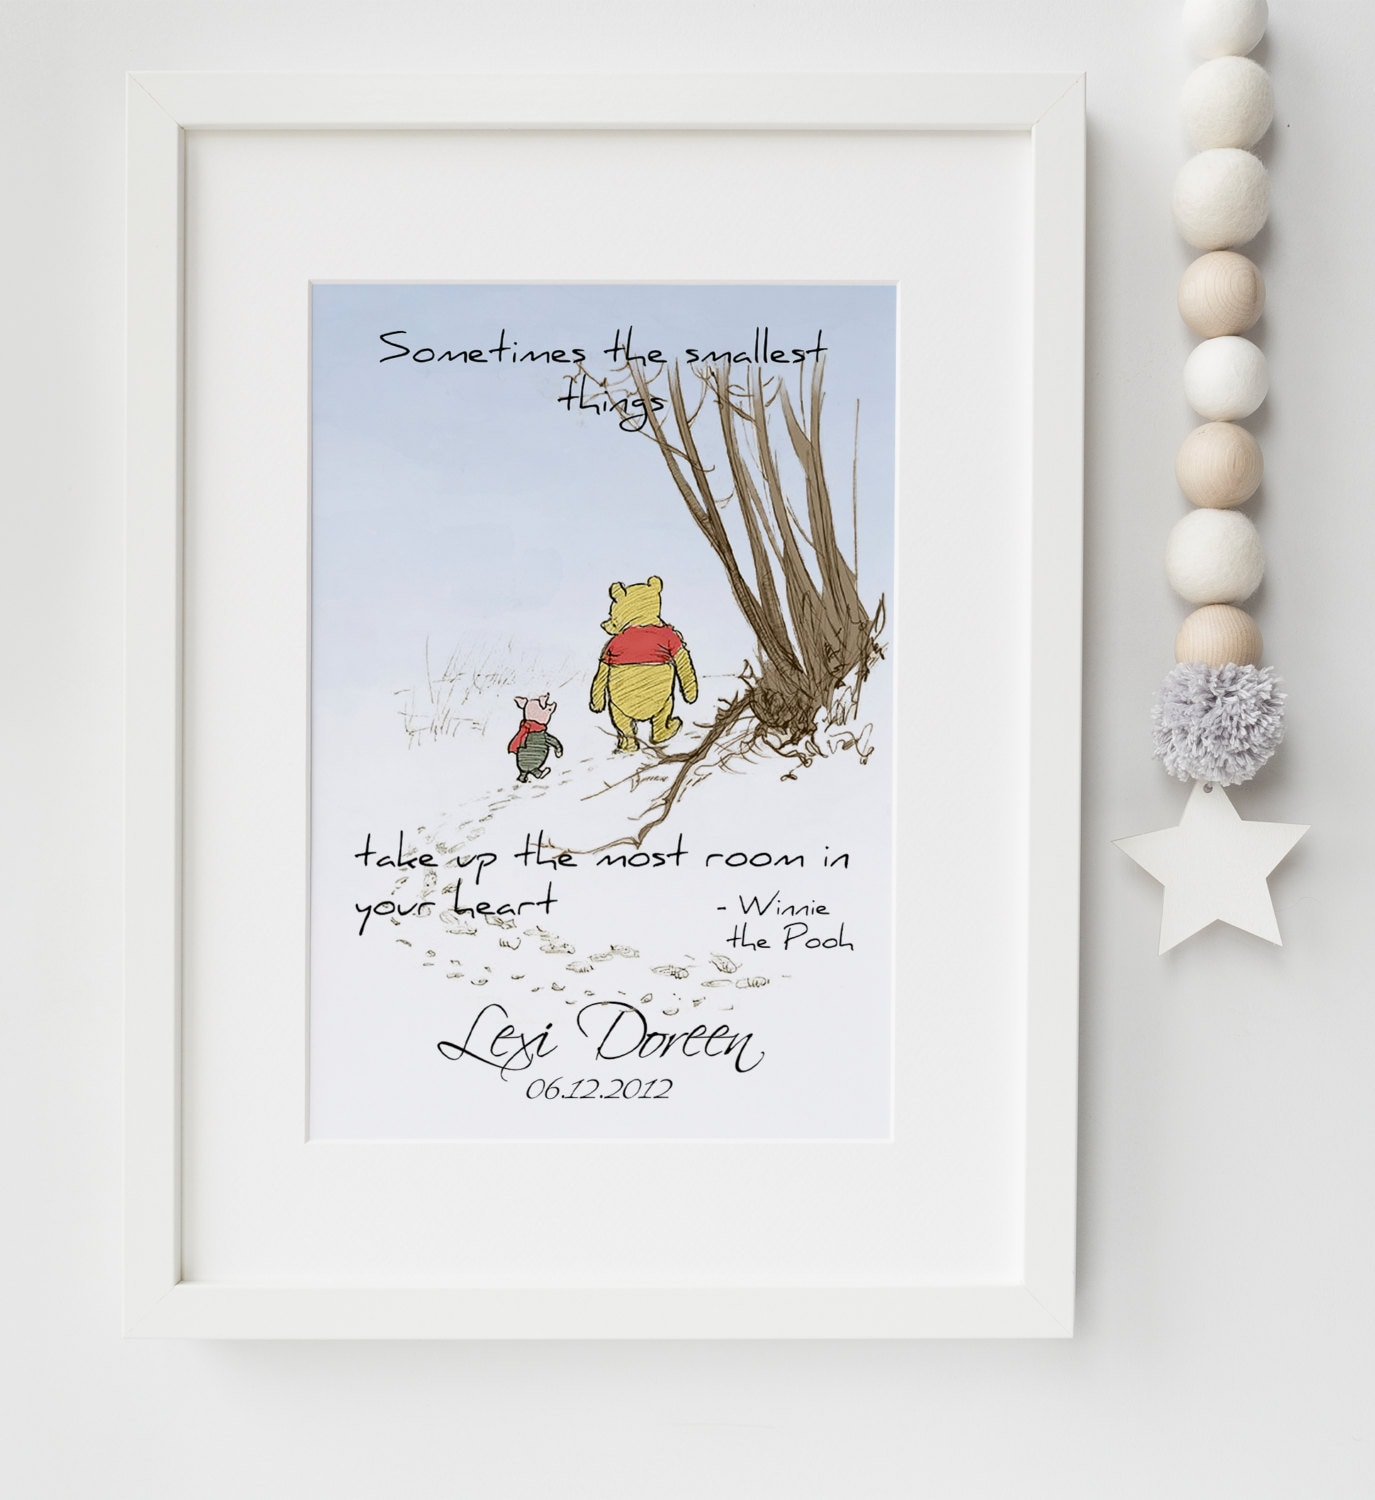 Personalised new baby boygirl winnie the pooh quote birth name personalised new baby boygirl winnie the pooh quote birth name nursery print keepsake picture christening gift negle Images